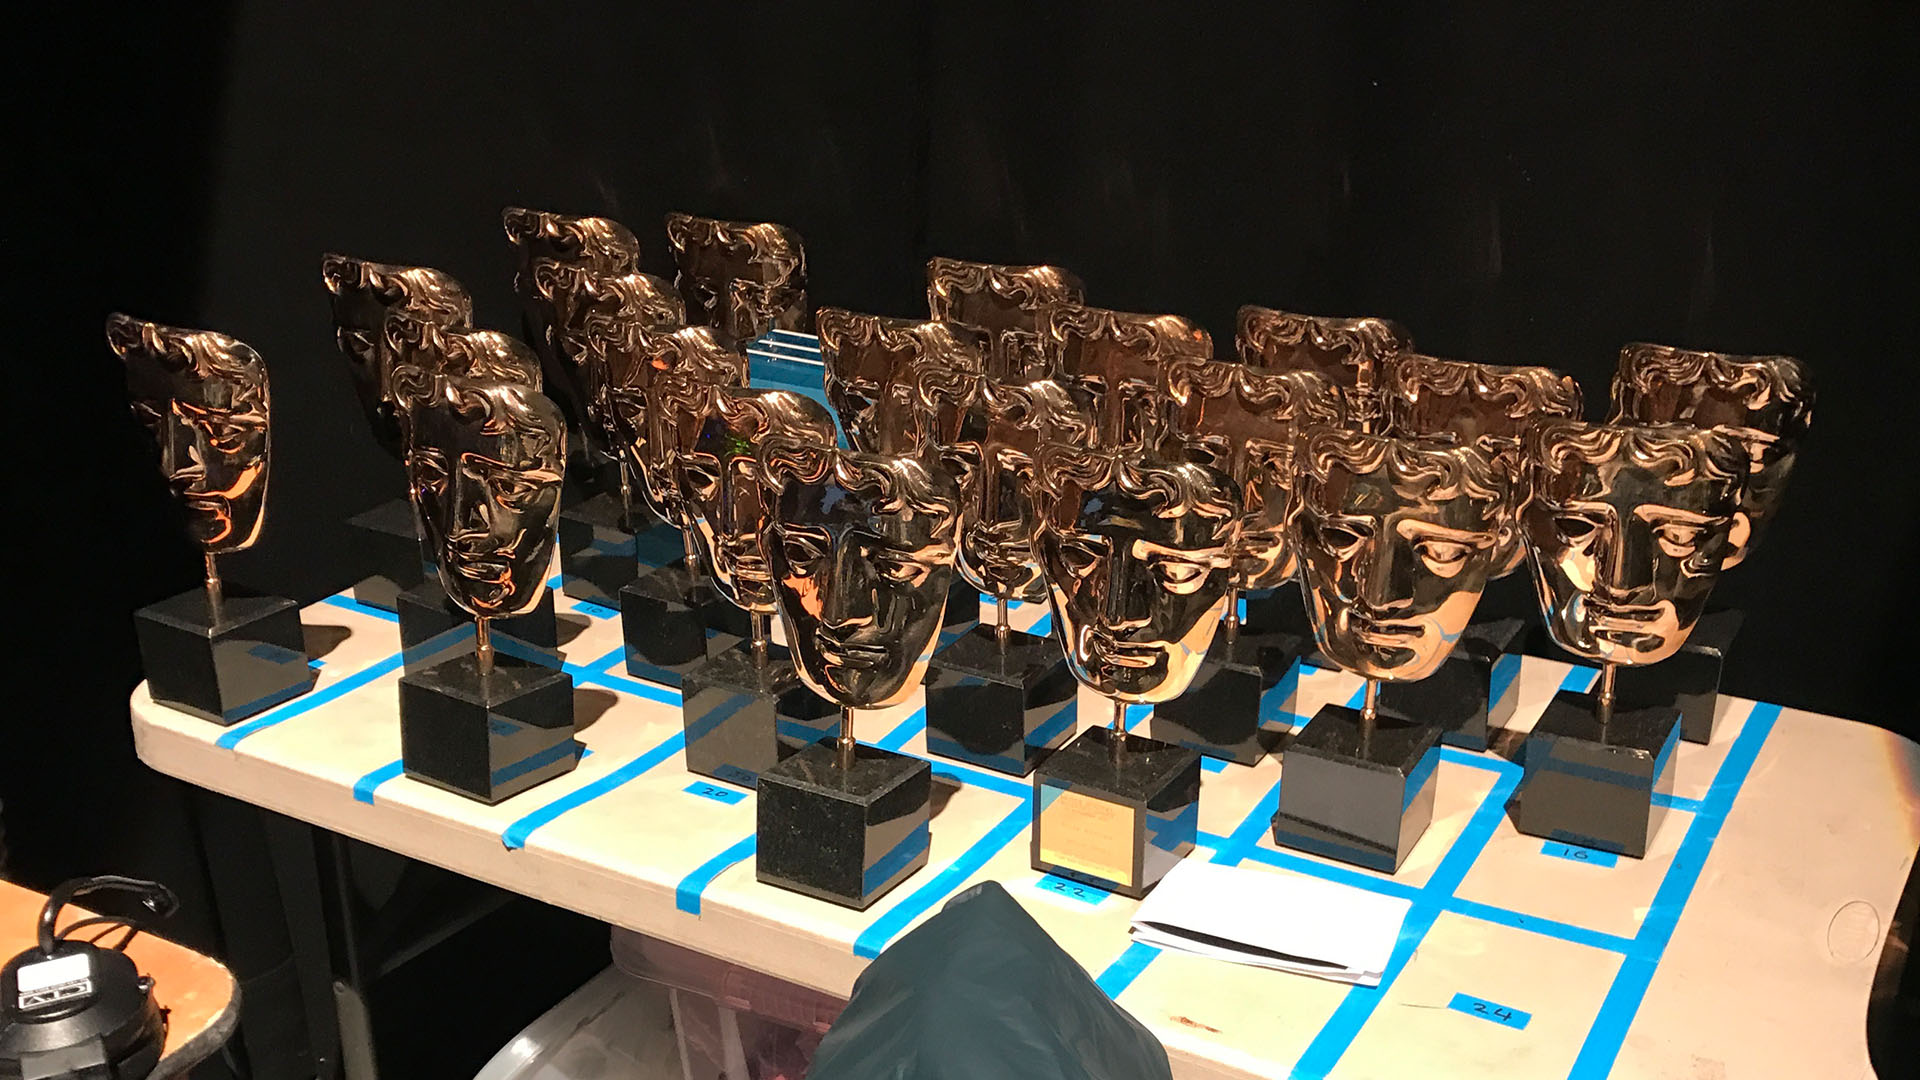 BAFTA's lined up and ready - Children's Awards 2016